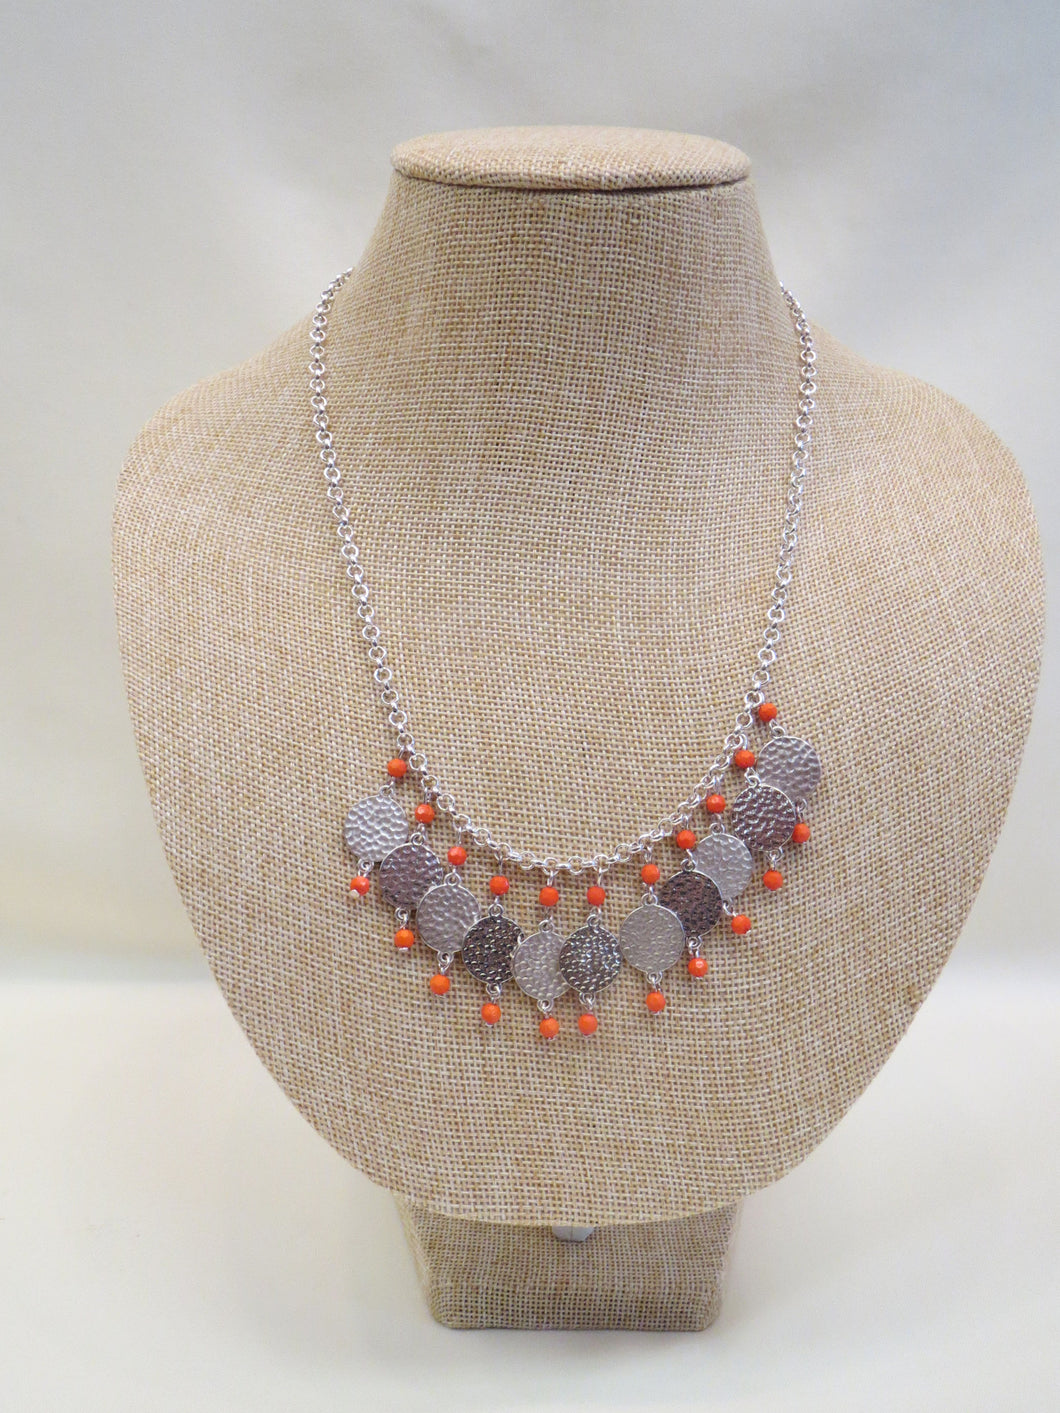 ADO Silver Necklace with Coral Beads | All Dec'd Out